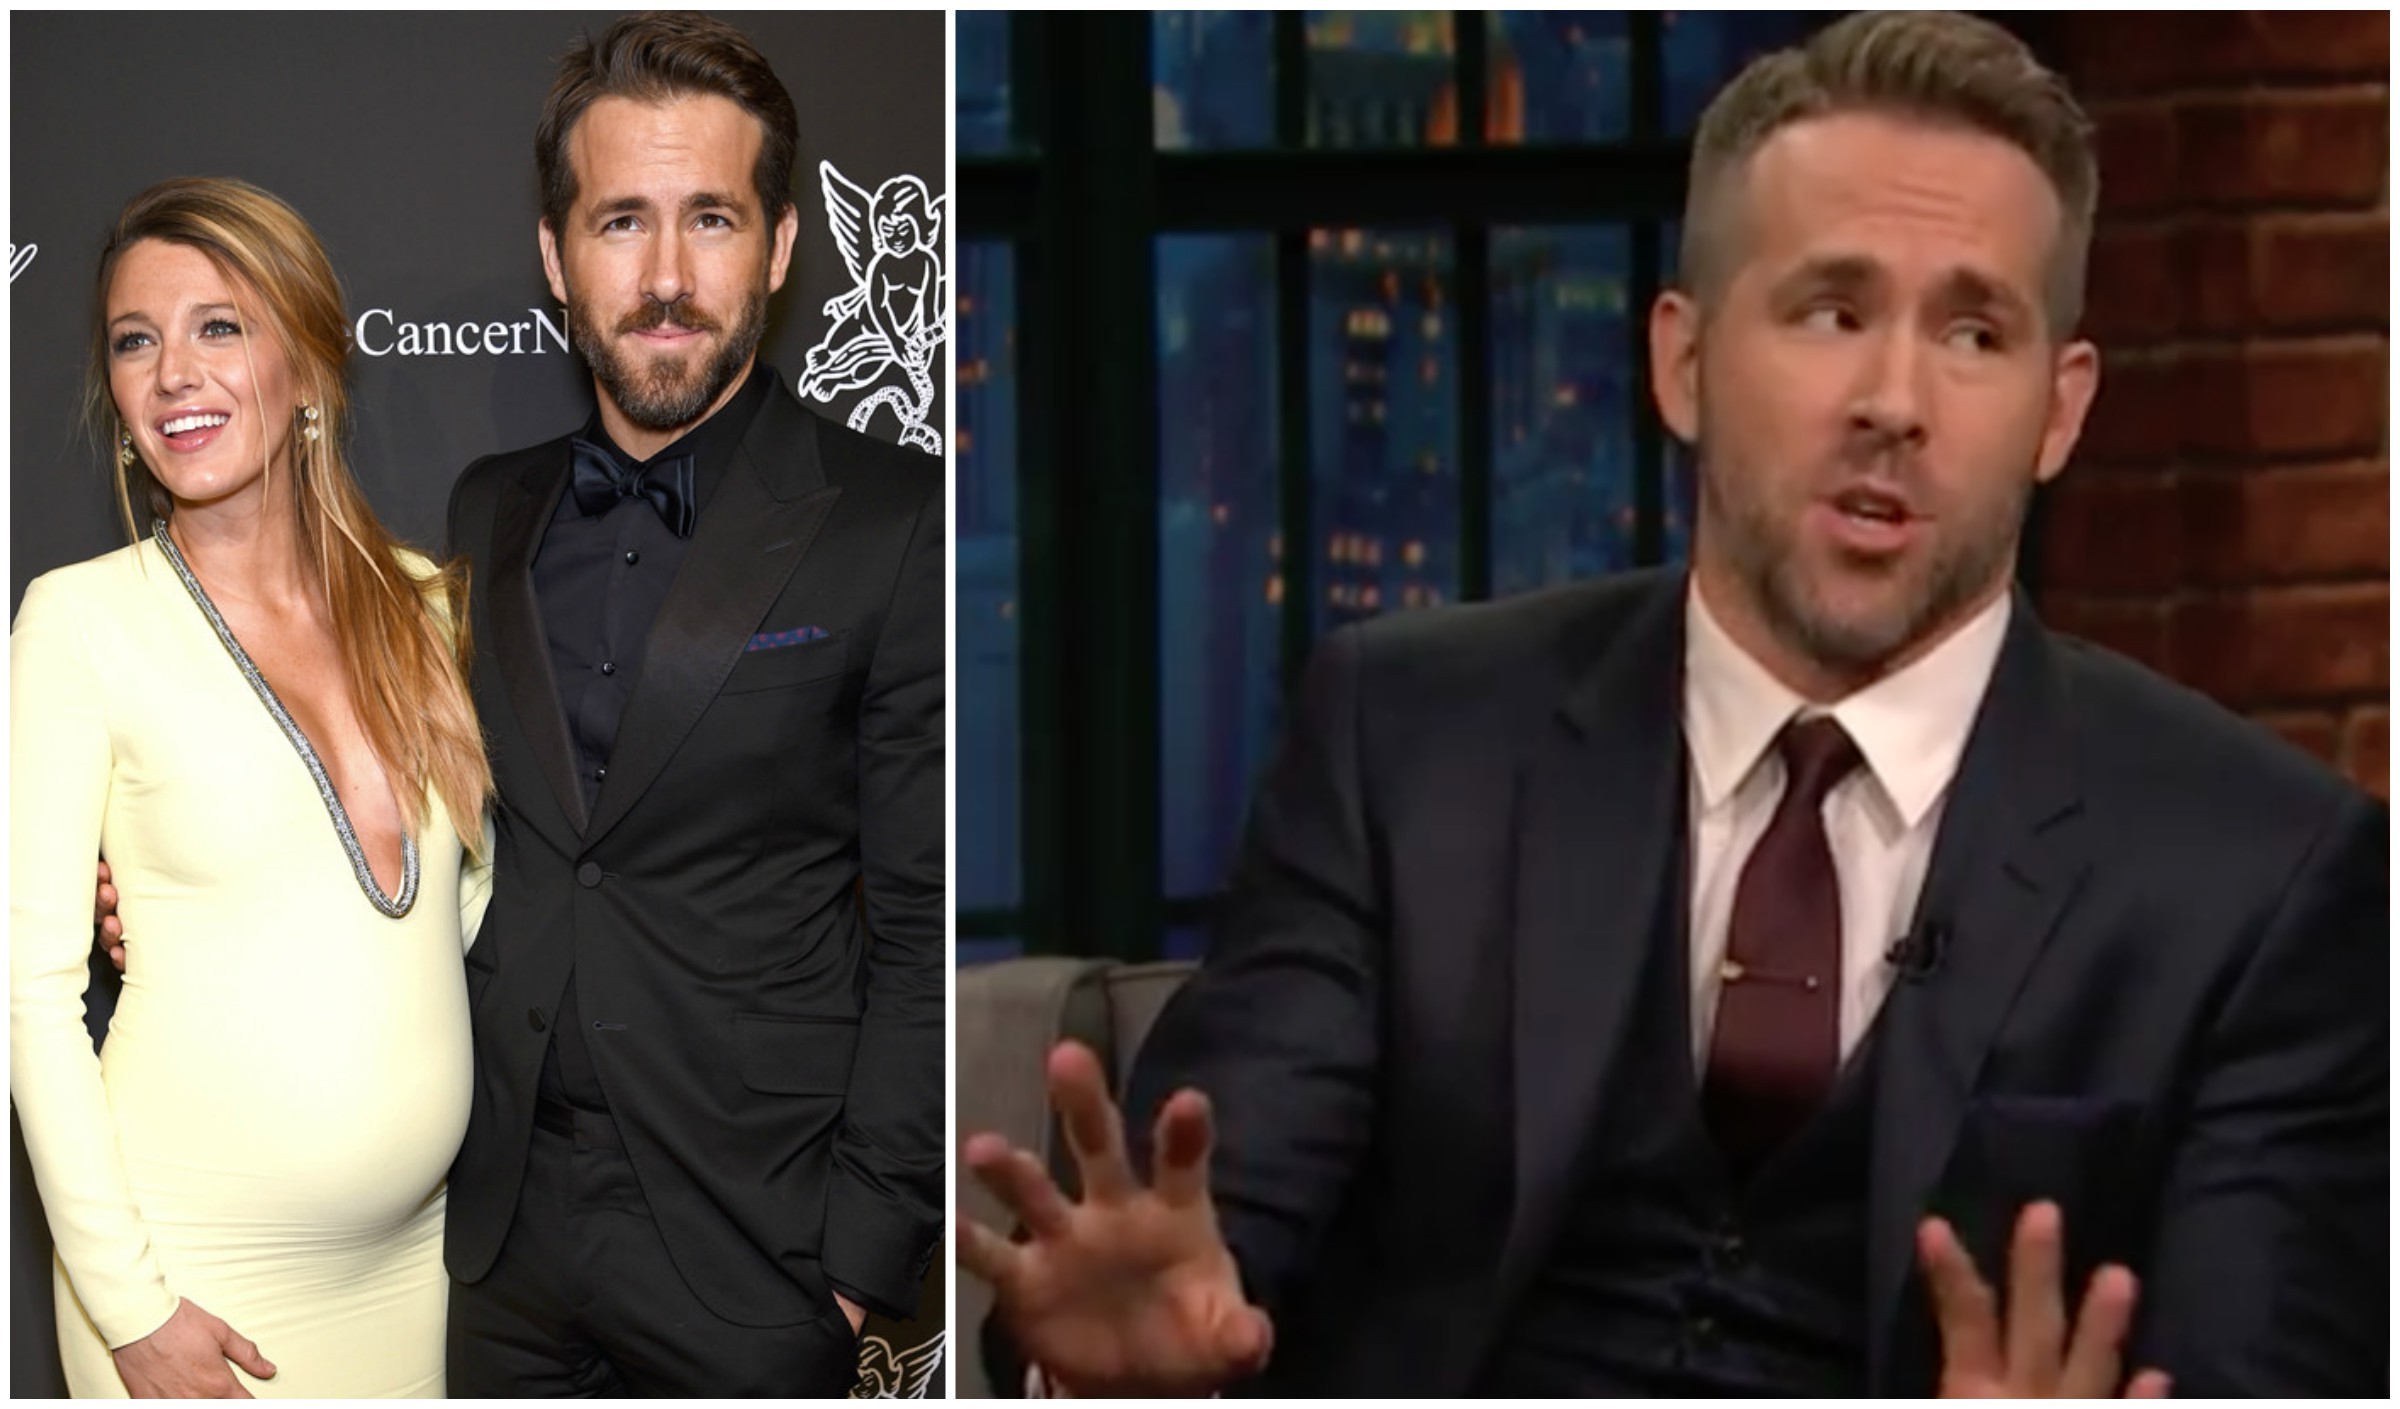 PUSH IT: Ryan Reynolds Shares Tips for Women in LABOR! image